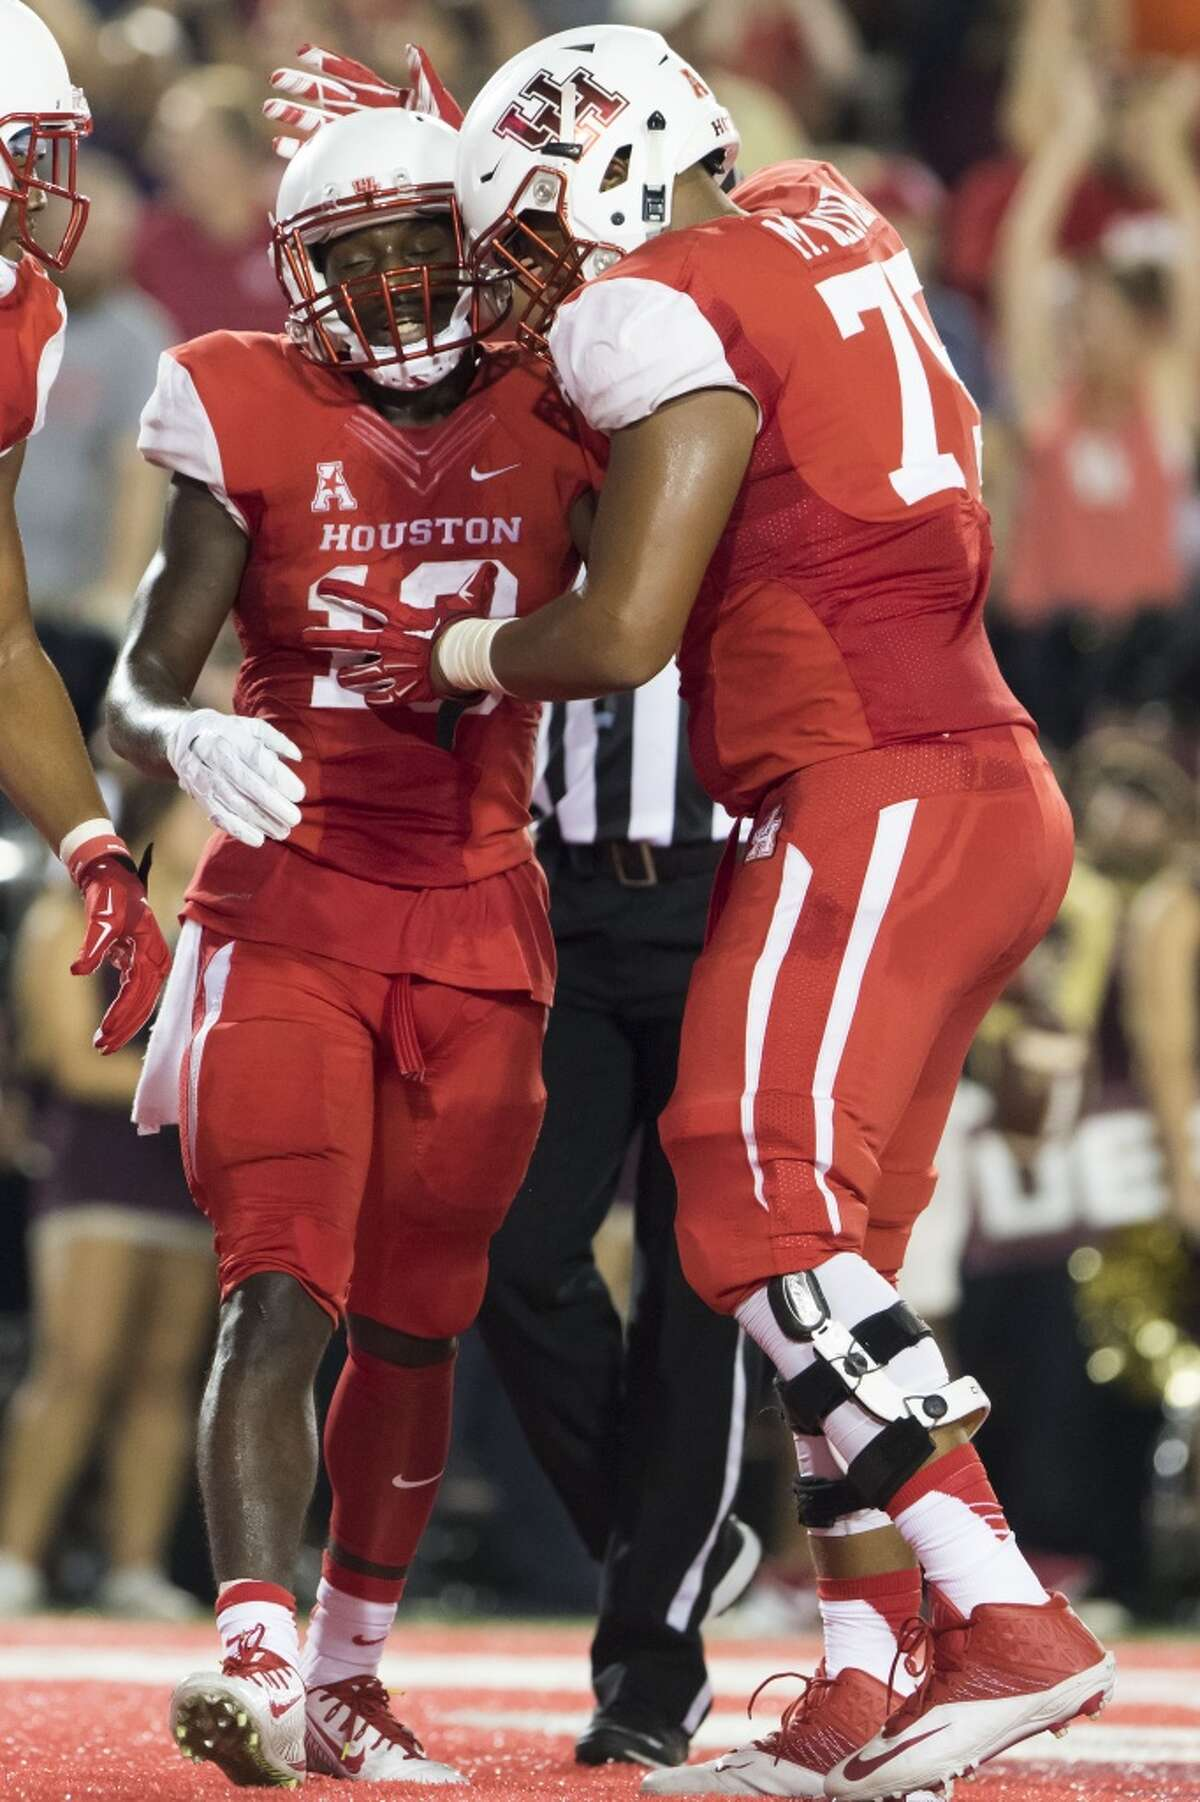 Houston Cougars' wide receiver Demarcus Ayers (10) celebrates with offensive lineman Marcus Oliver (75) after catching a touchdown in the second quarter of a NCAA college football game at TDECU Stadium on Saturday, September 26, 2015, in Houston. ( Joe Buvid / For the Chronicle )